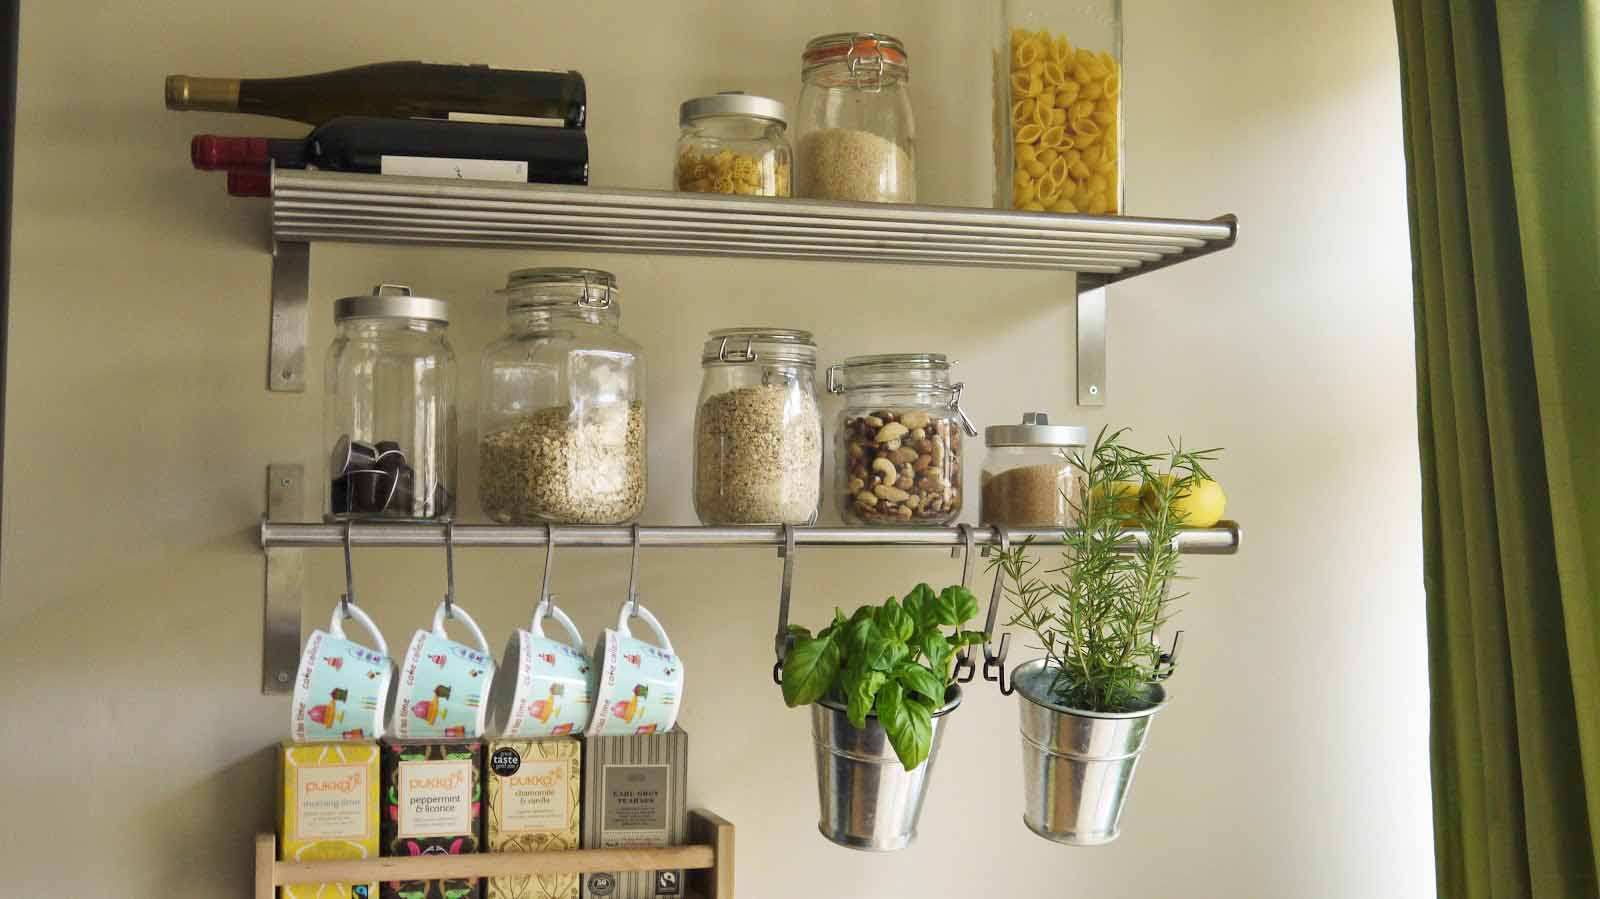 Wall Shelving Ideas For Small Spaces: 7 Smart Ways To Save A Ton Of Space In Your Small Kitchen